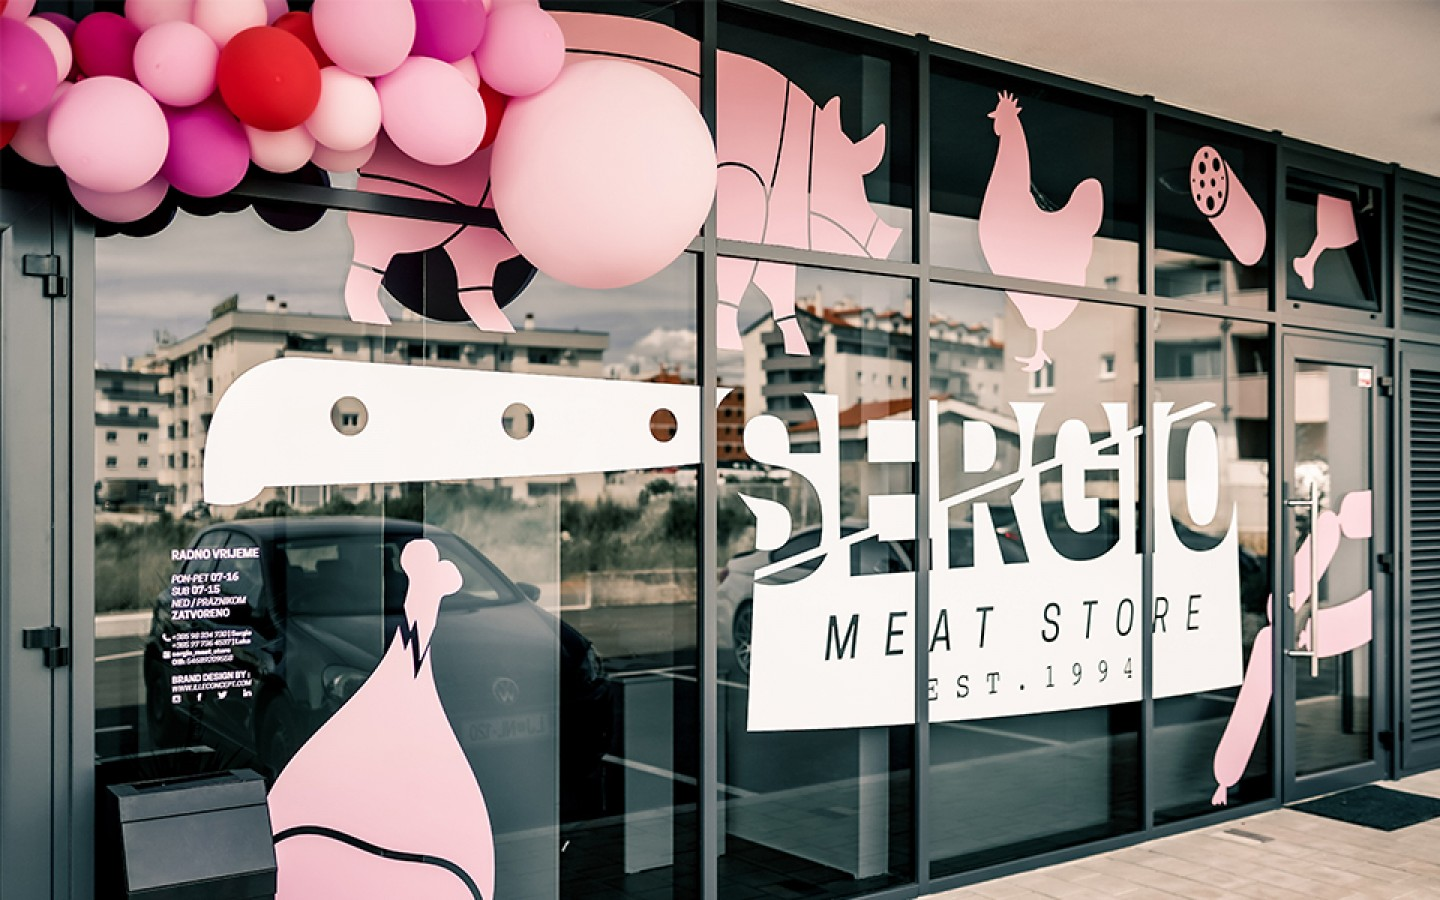 VISUAL IDENTITY & INTERIOR DESIGN - SERGIO MEAT STORE